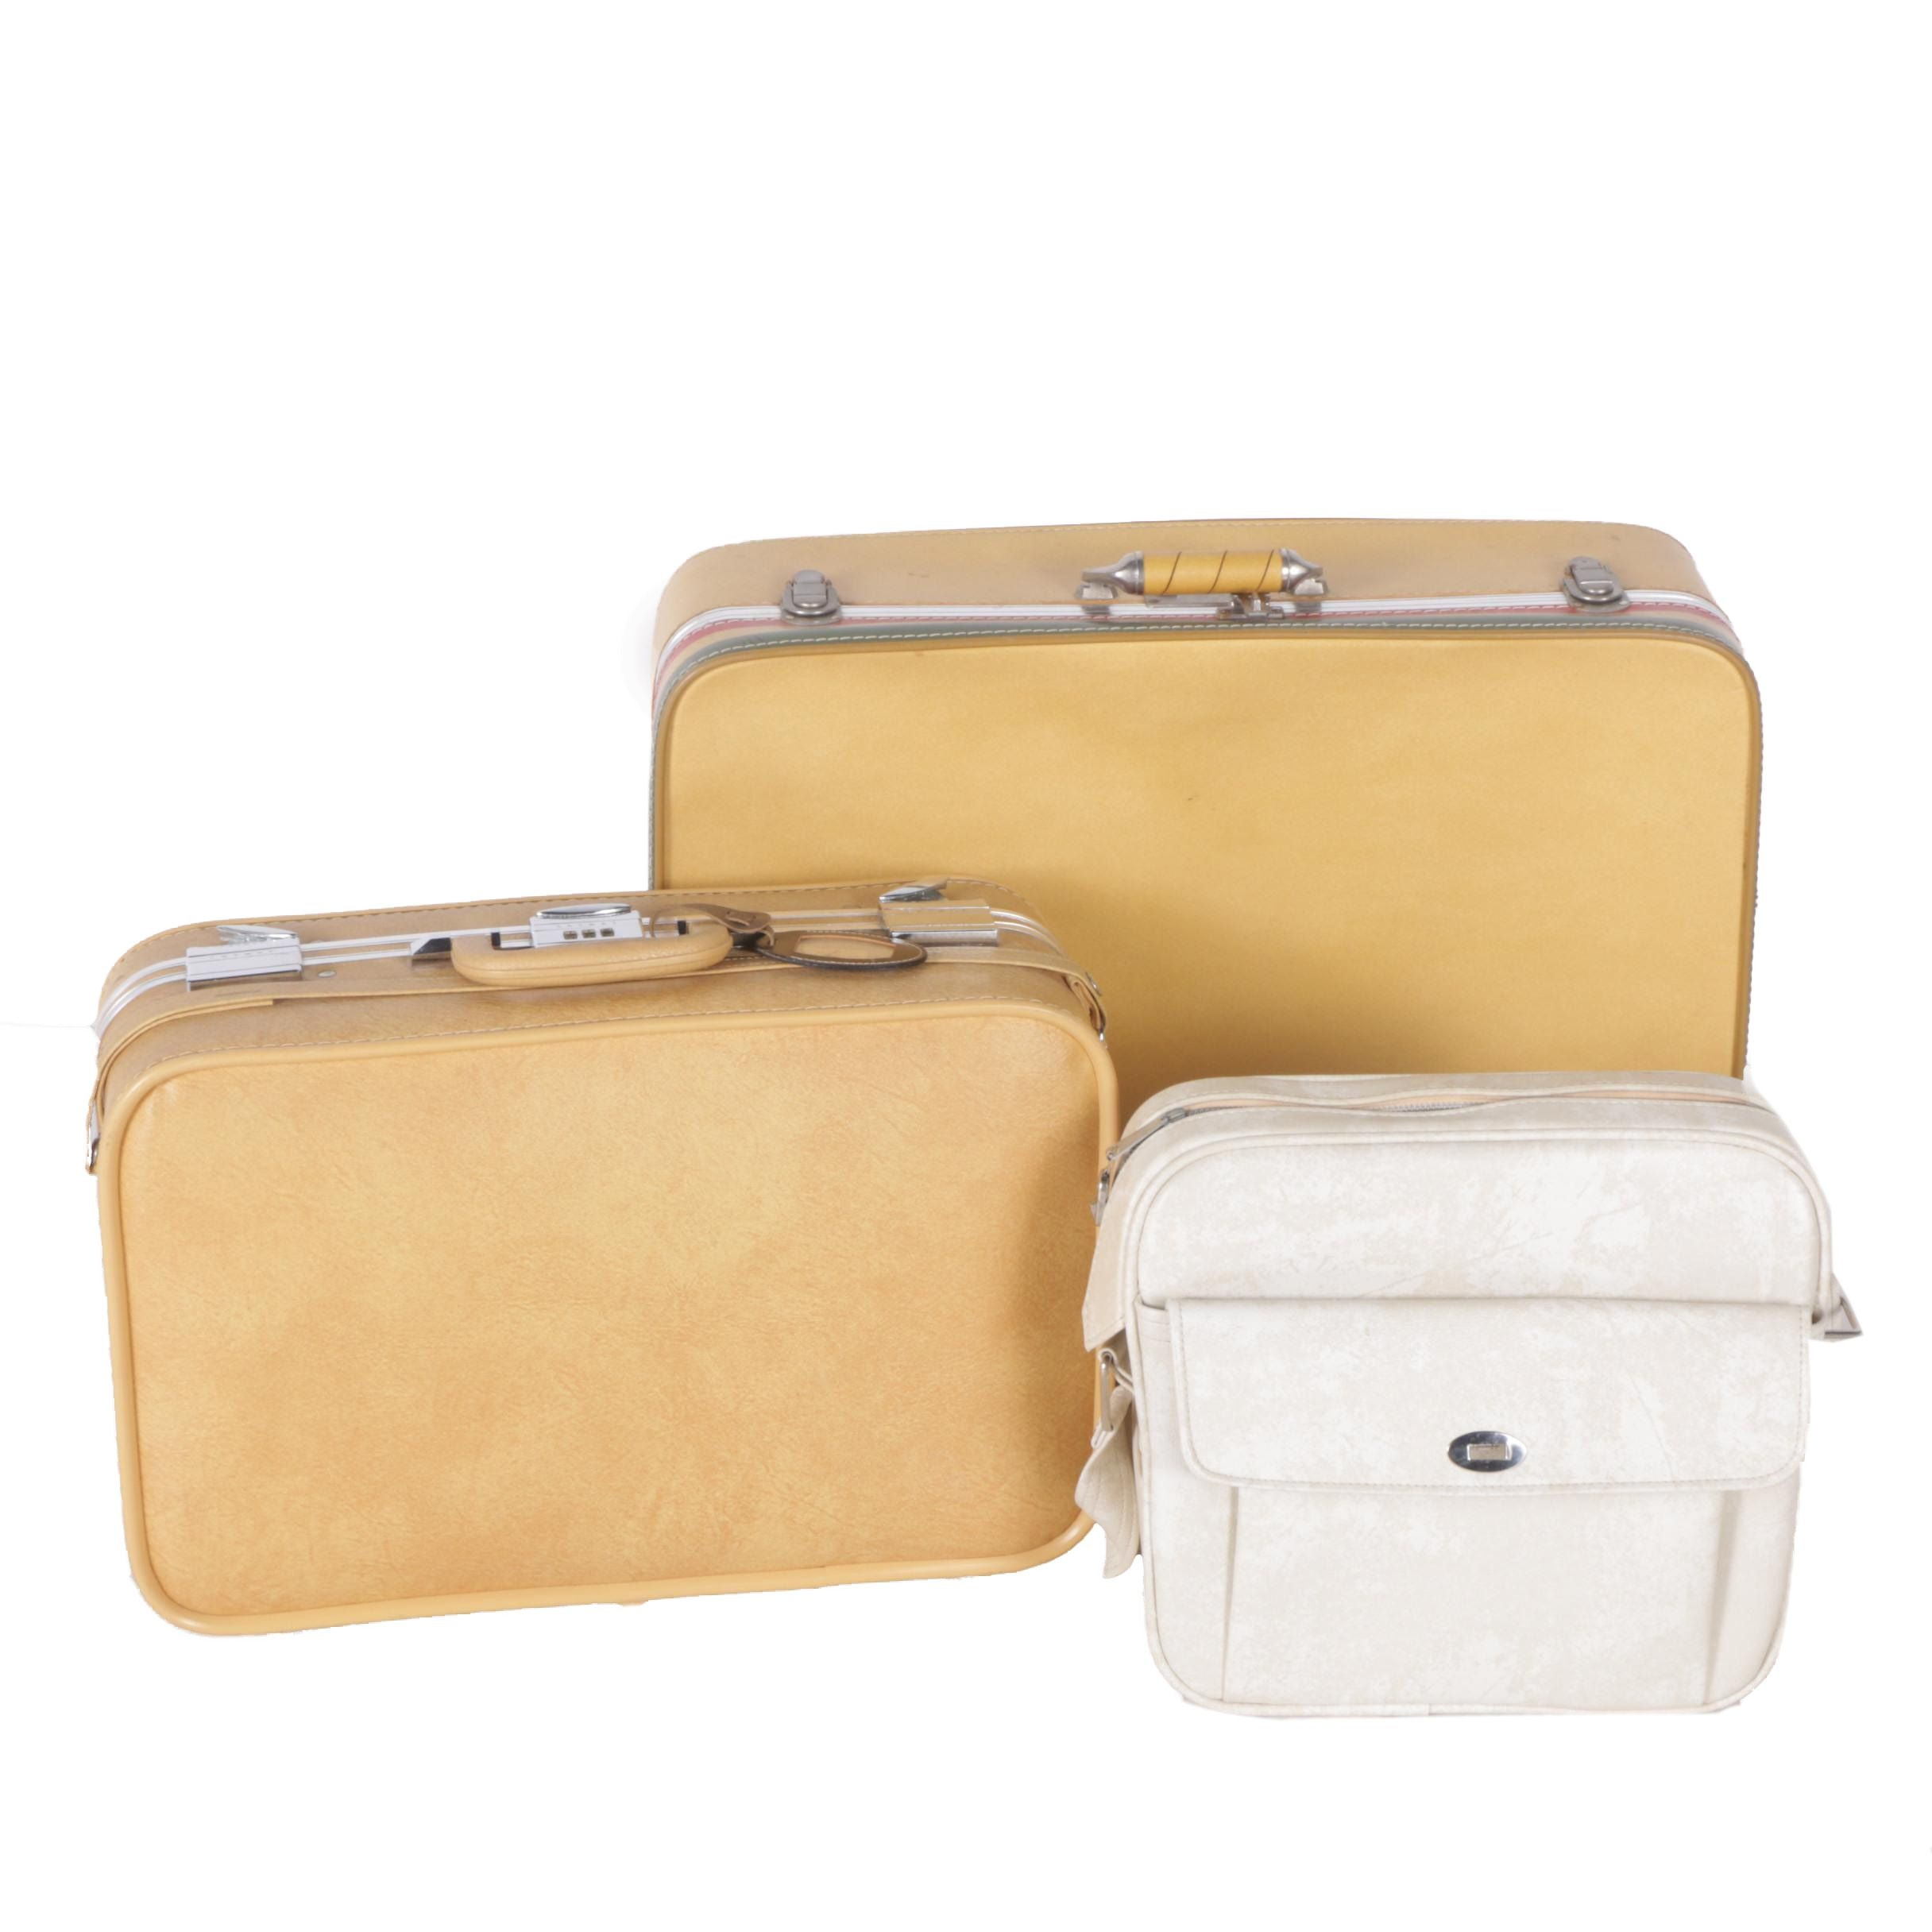 Vintage Suitcases Including Skyway and Samsonite Carry-On Bag